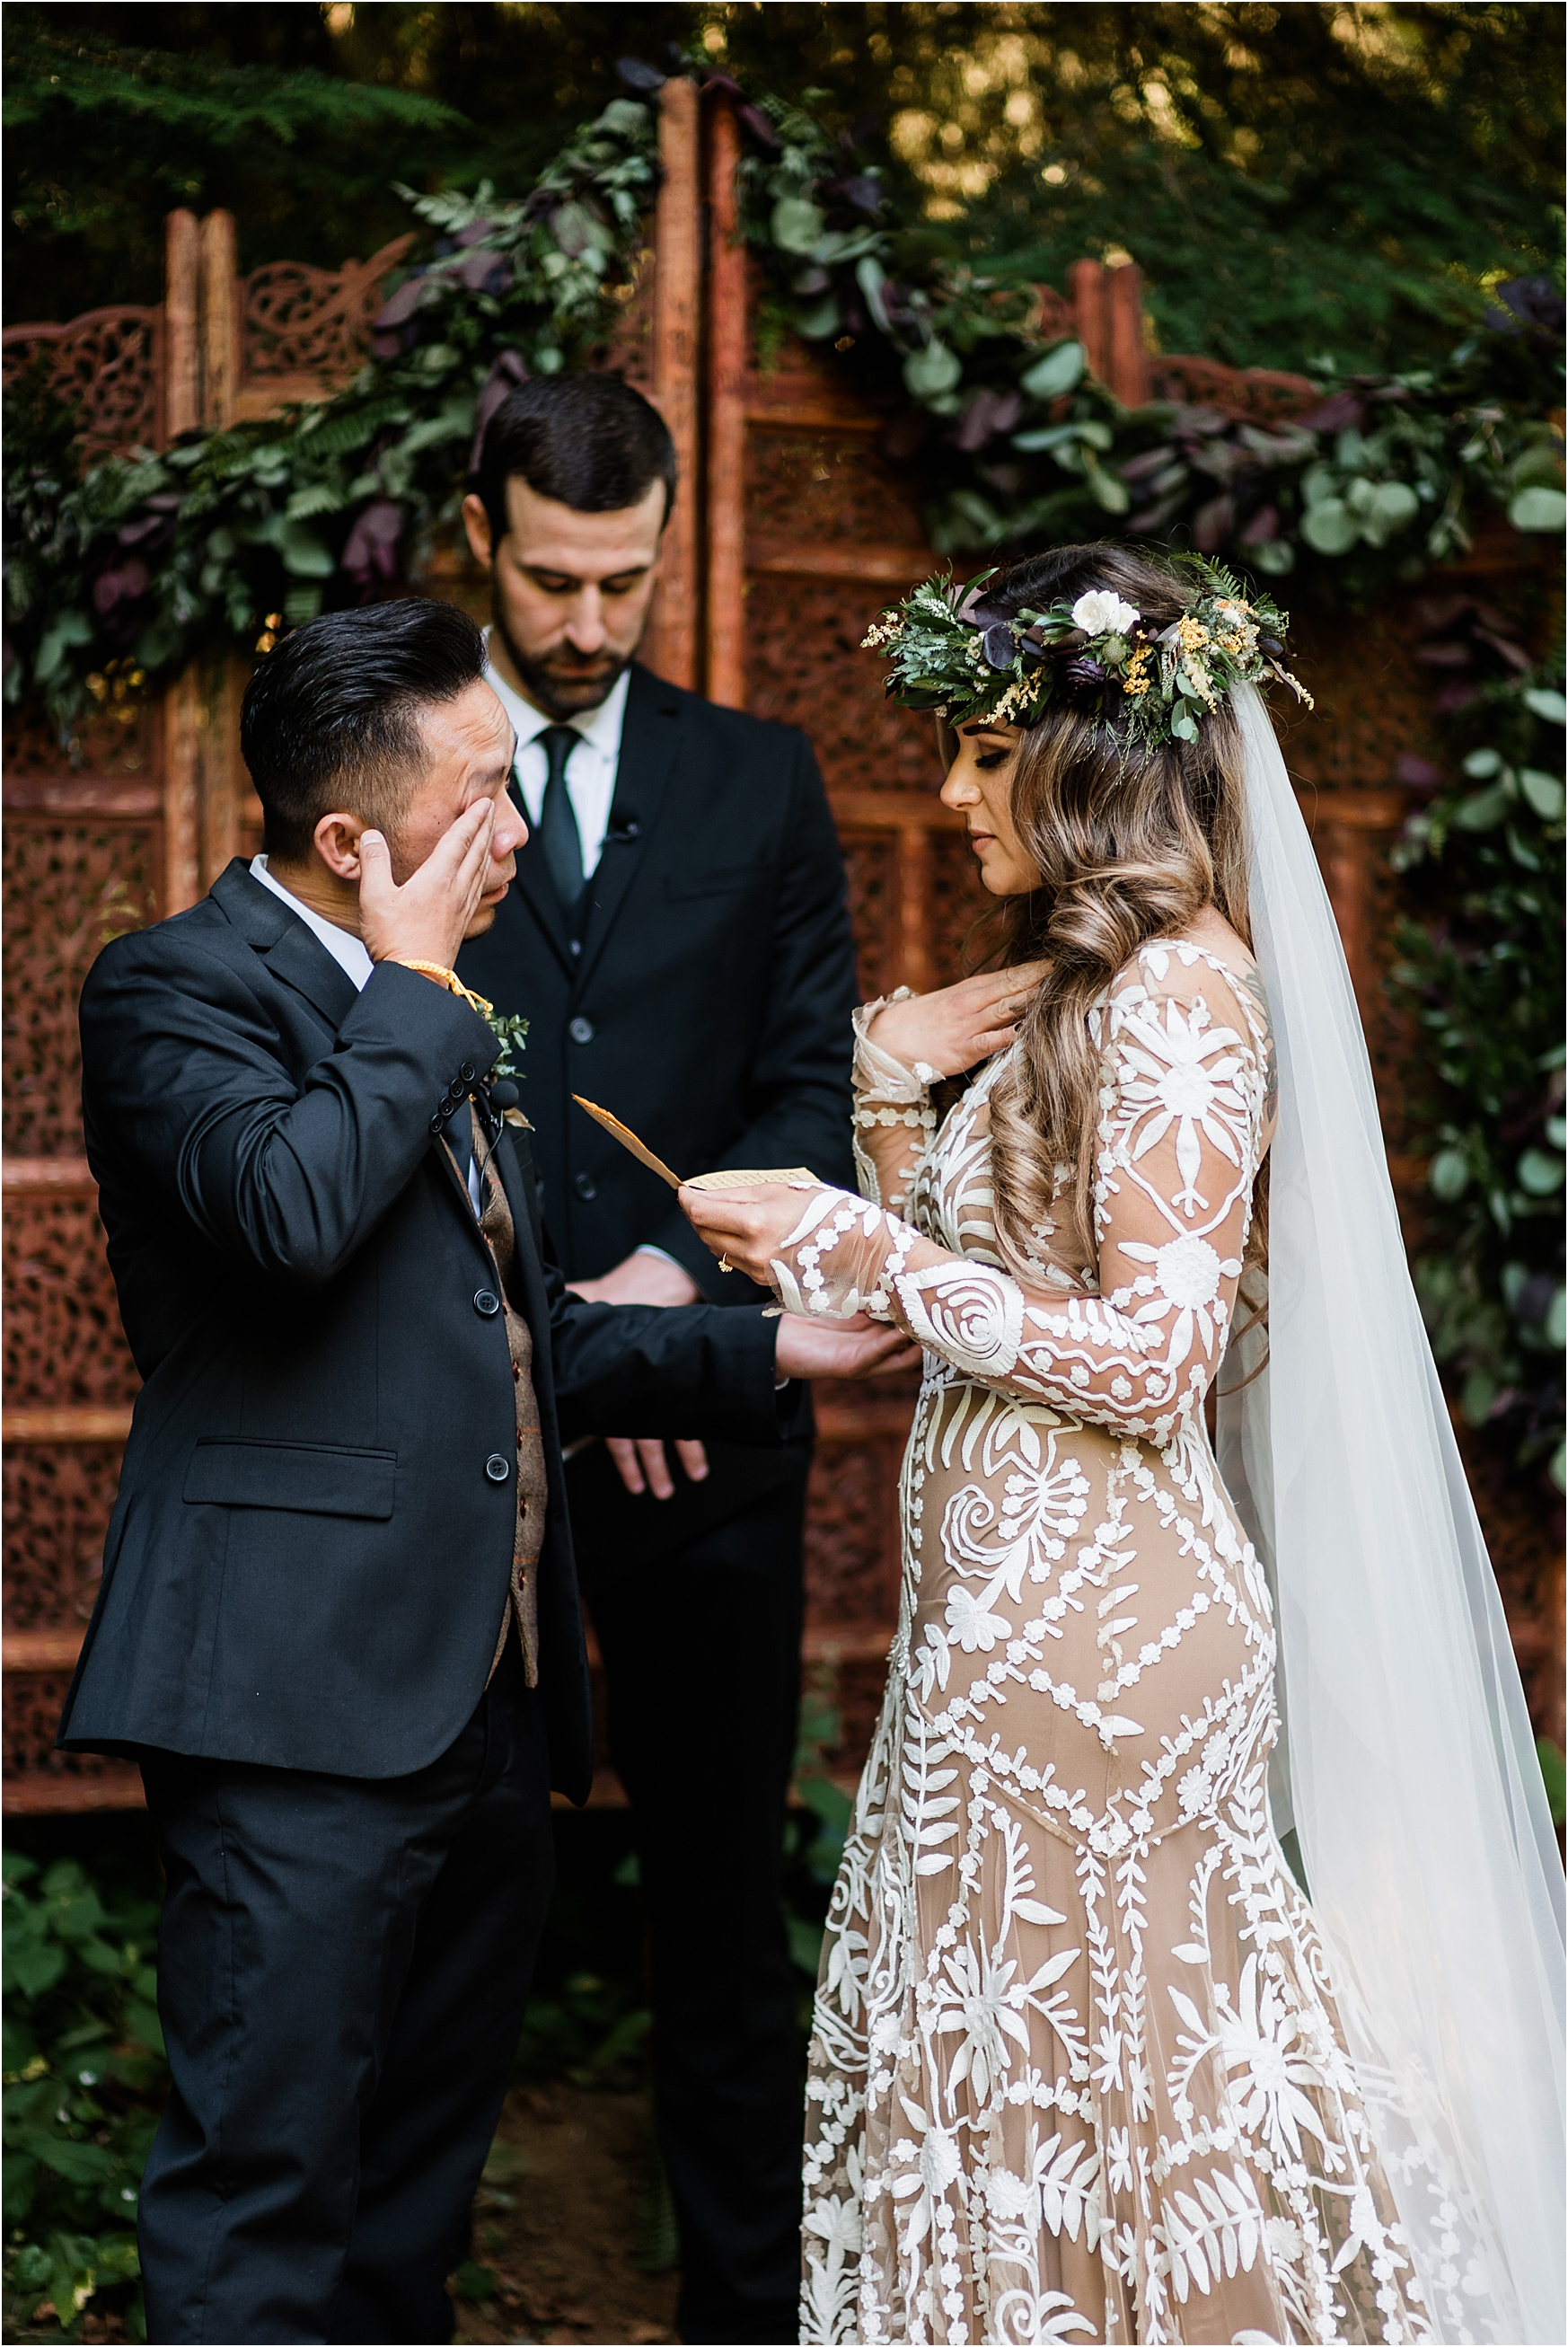 Emotional vow exchange at Cassy & Viva's bohemian Oregon destination wedding at Camp Lane. Image by Forthright Photo.